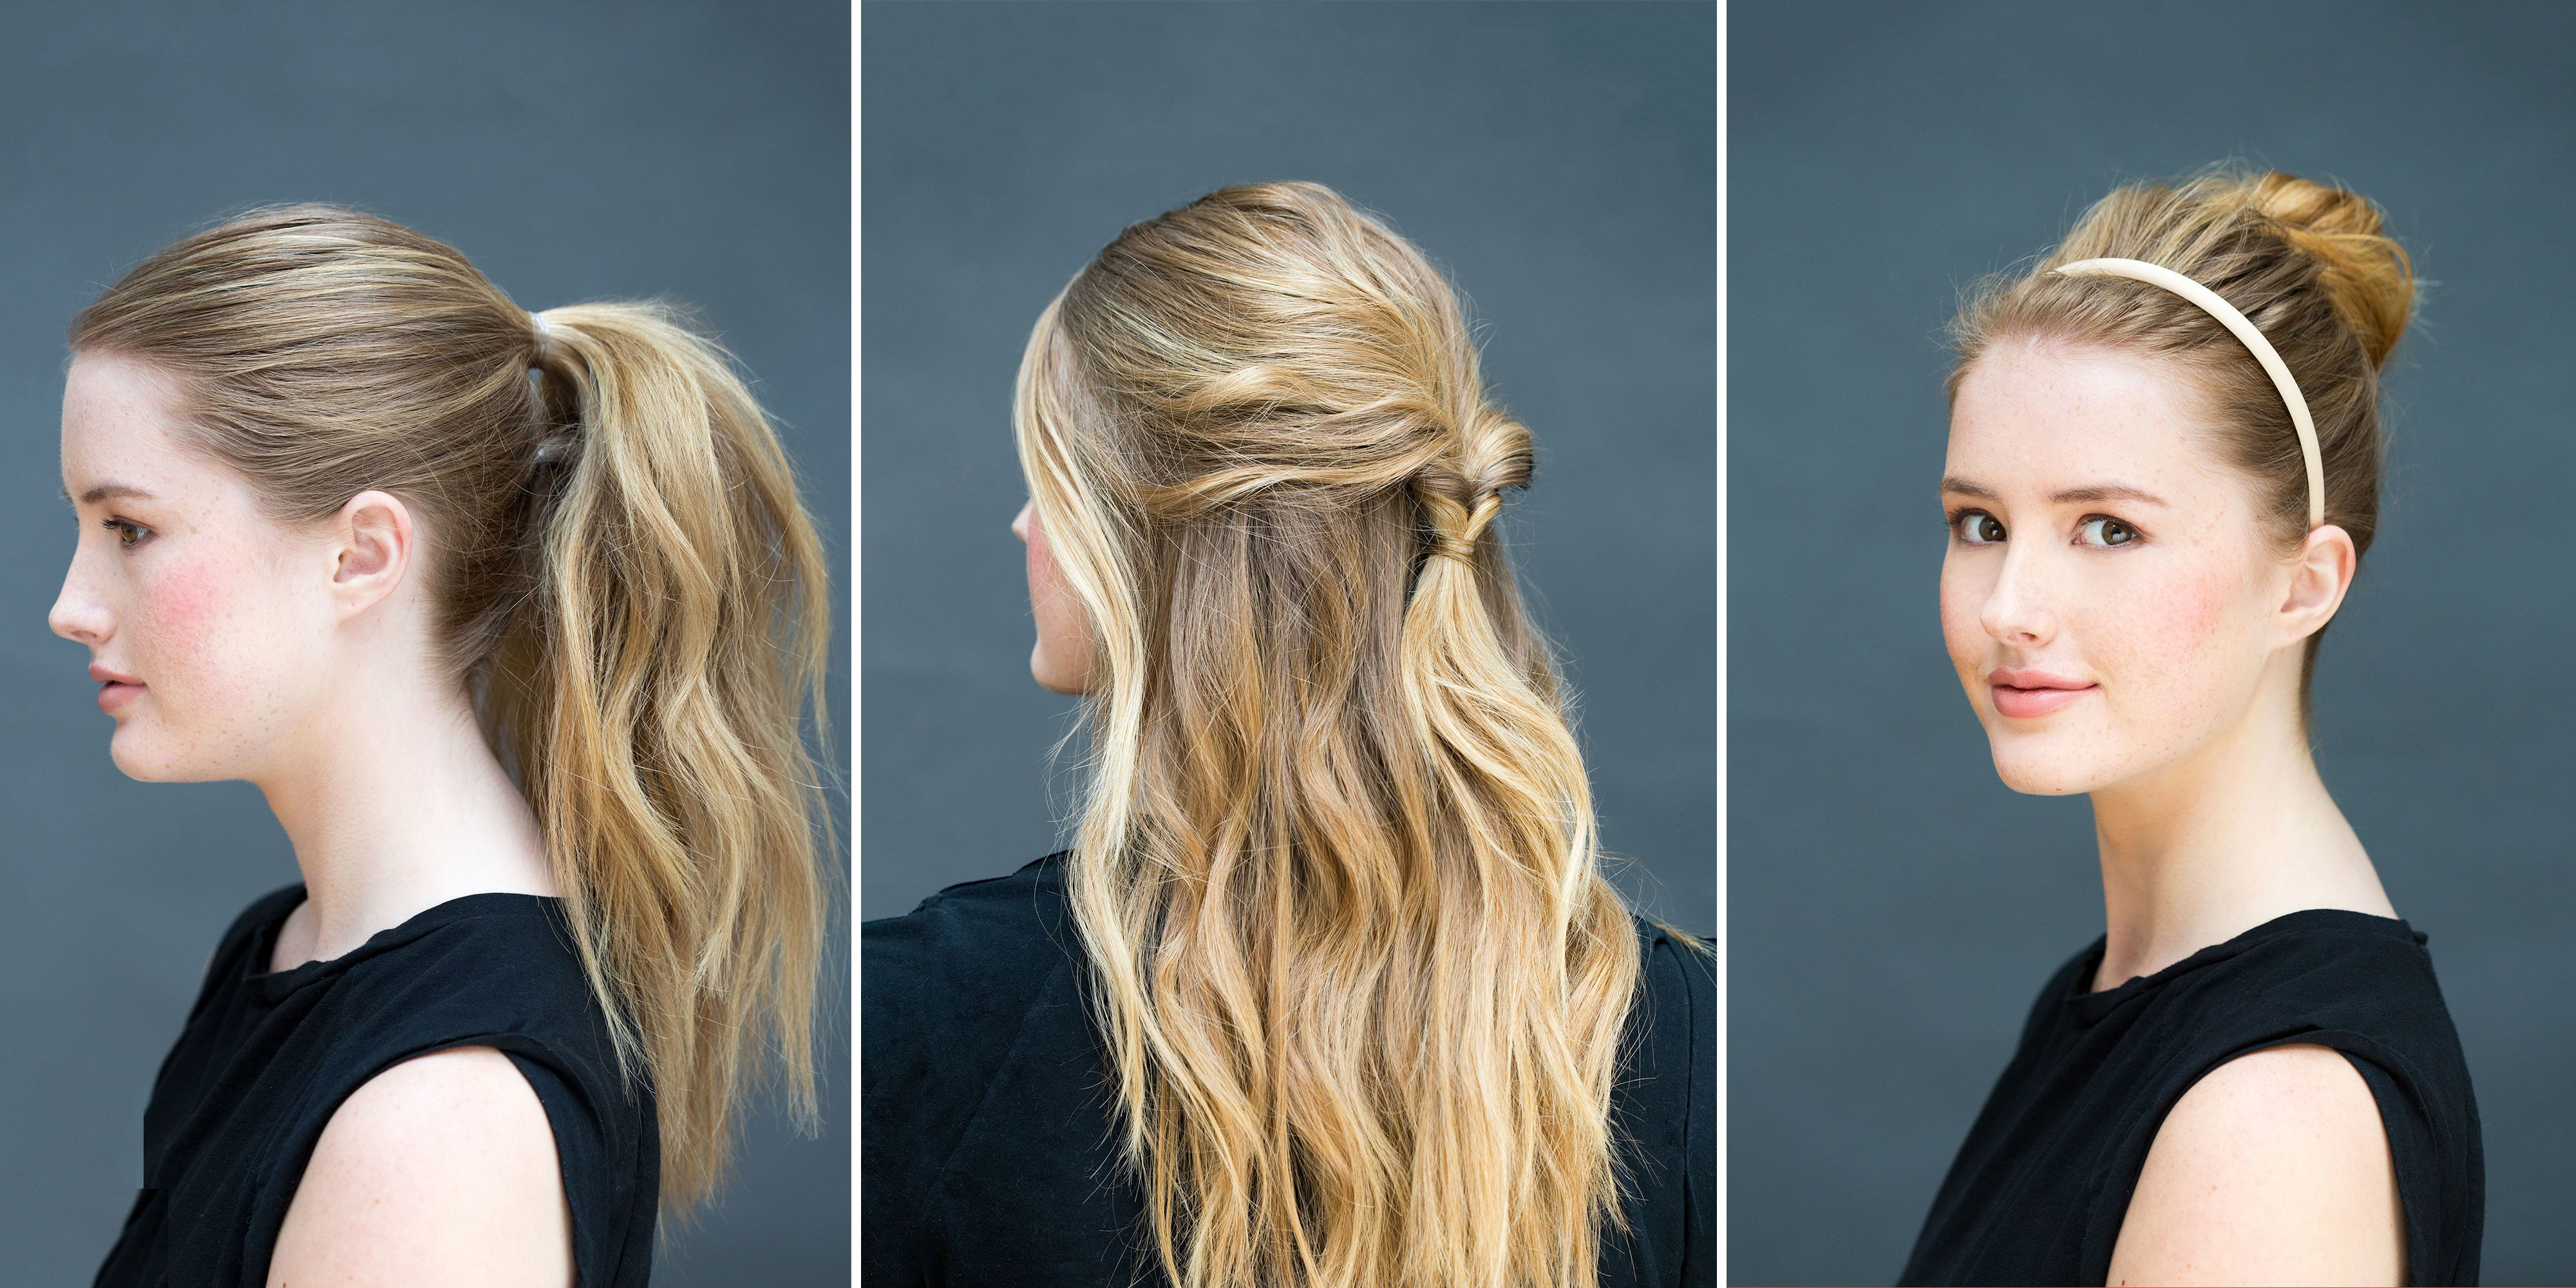 Easy to do hairstyles at home for medium hair.